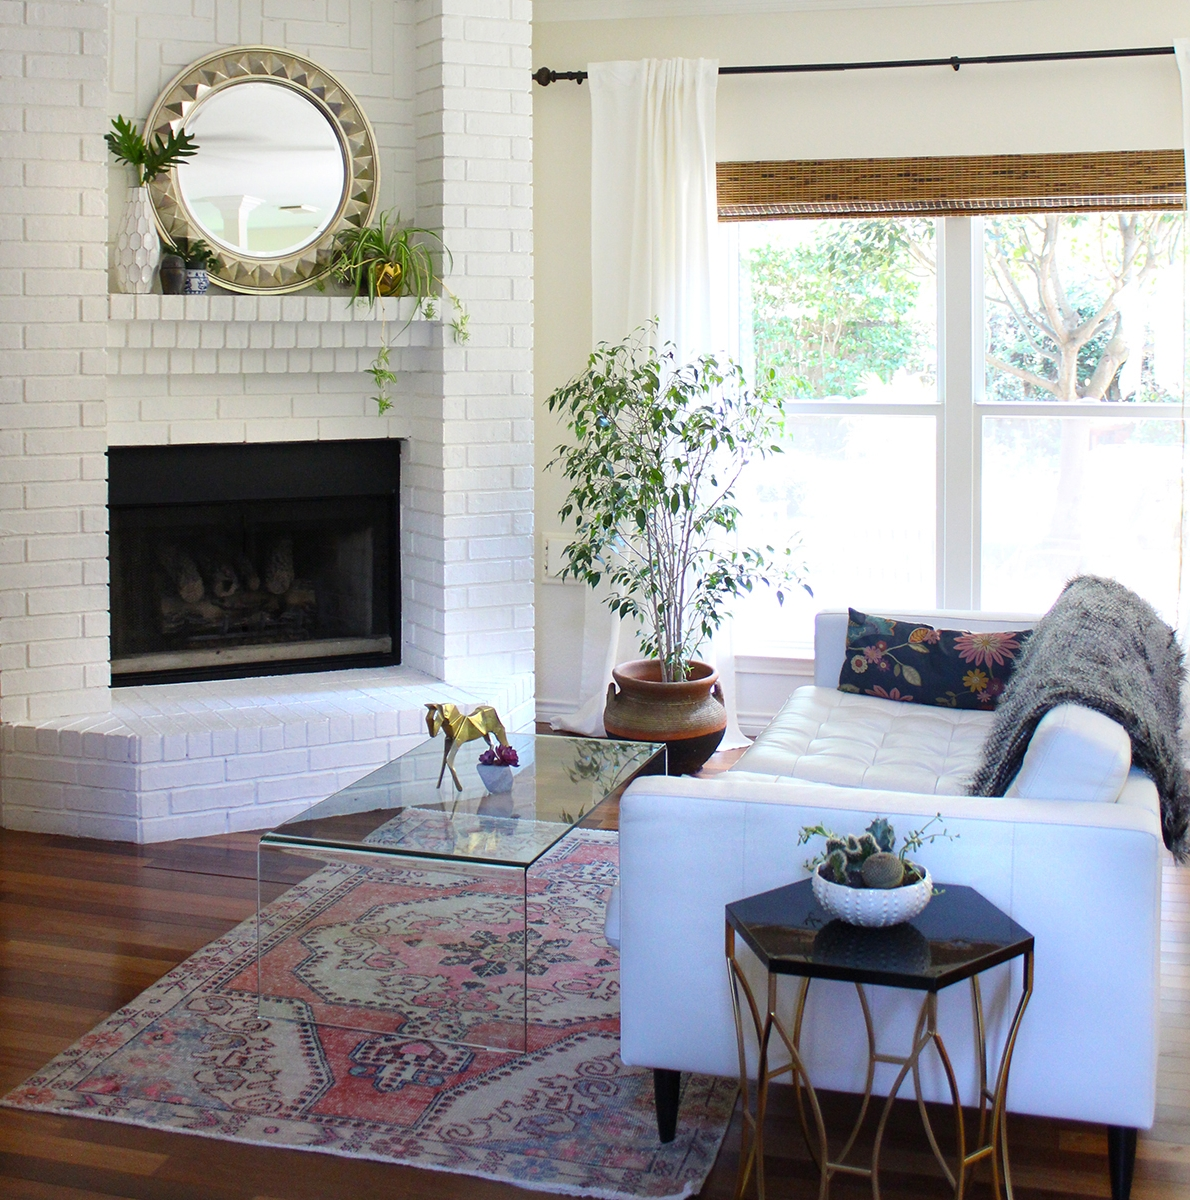 Living room by Kristin Laing Designs featuring painted brick fireplace, vintage Turkish rug and a waterfall coffee table.